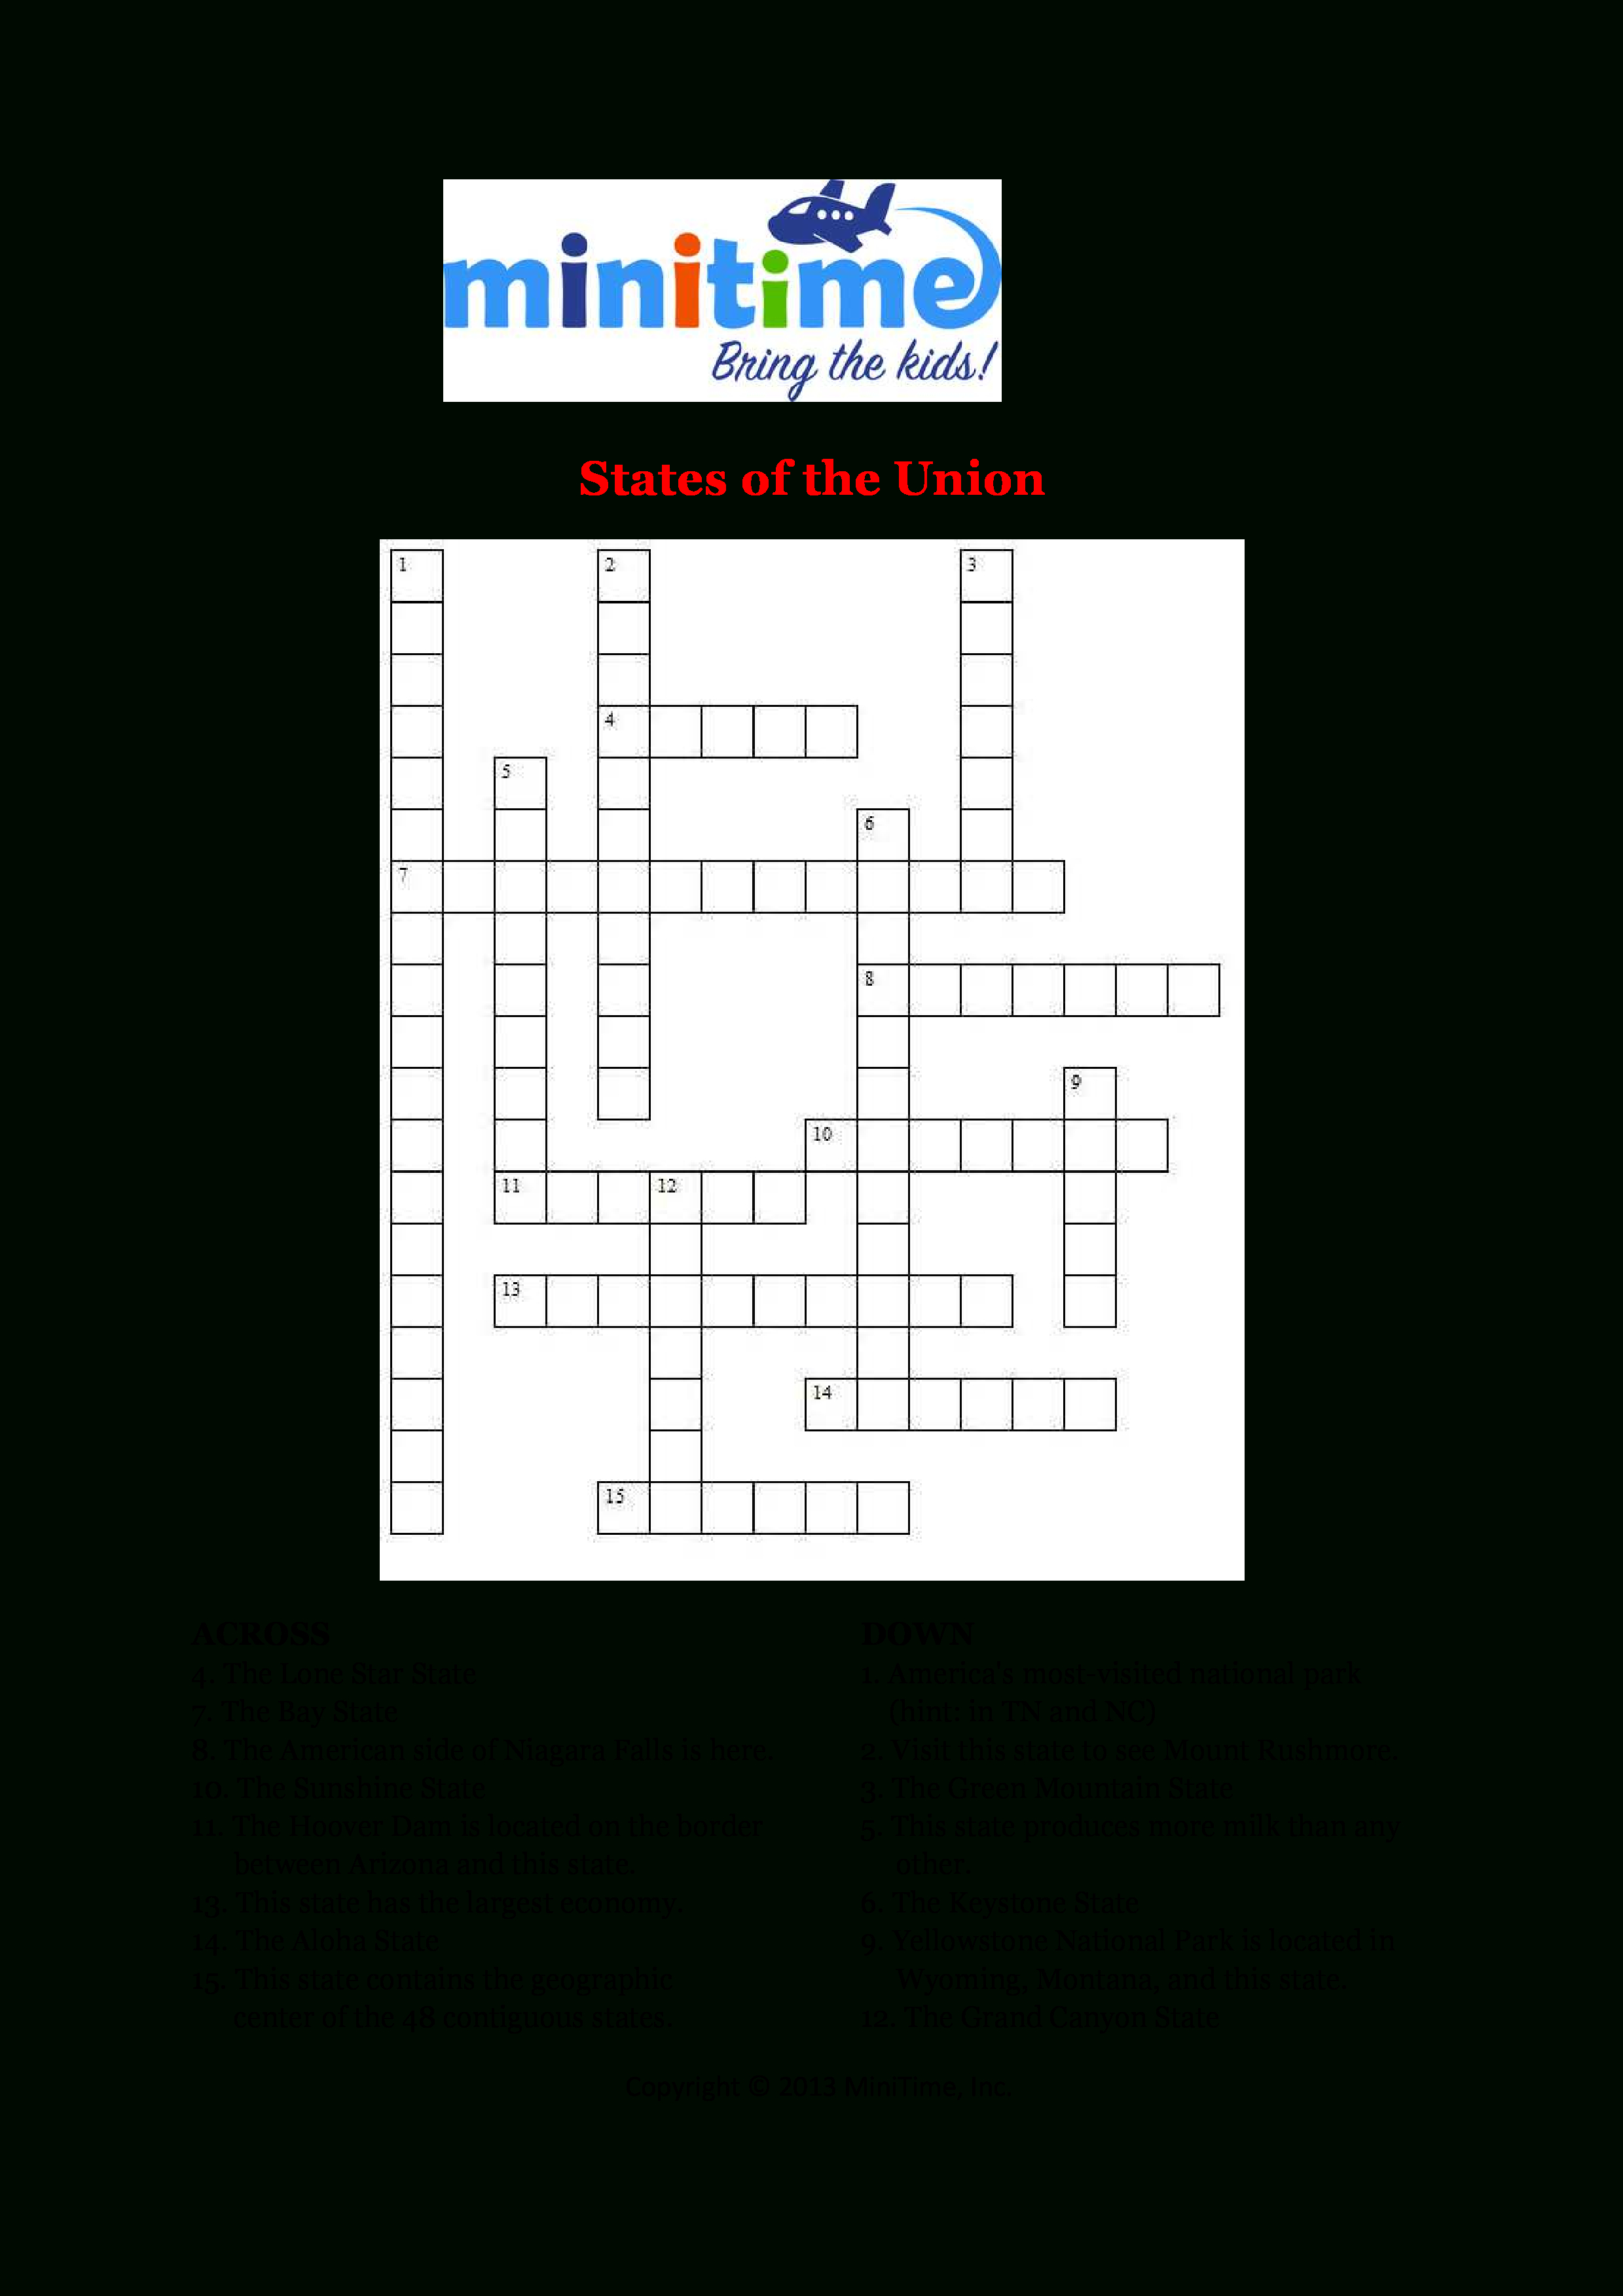 Us States Fun Facts Crossword Puzzles   Free Printable Travel - Printable Usa Crossword Puzzles